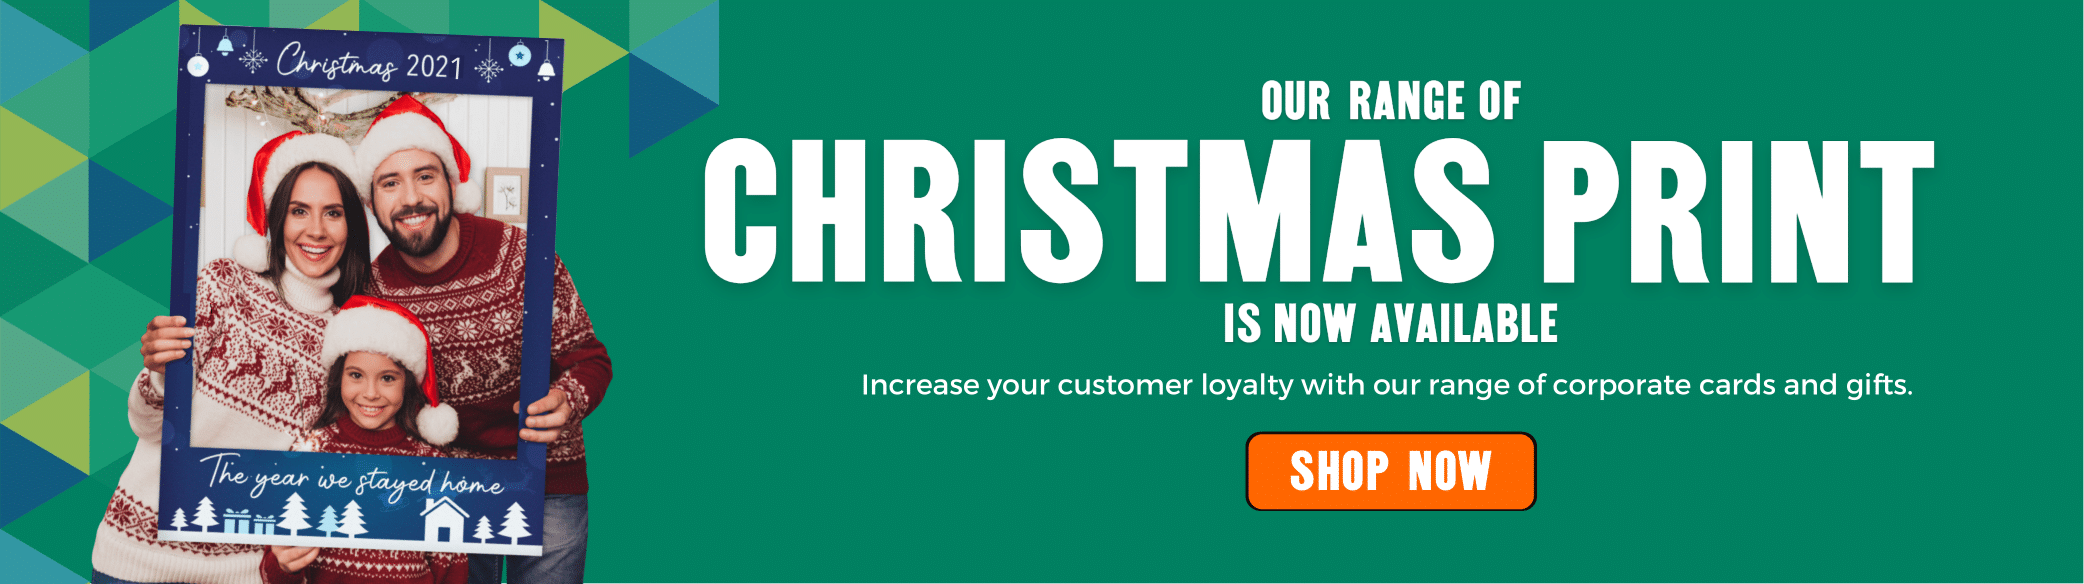 Christmas print products are now available.